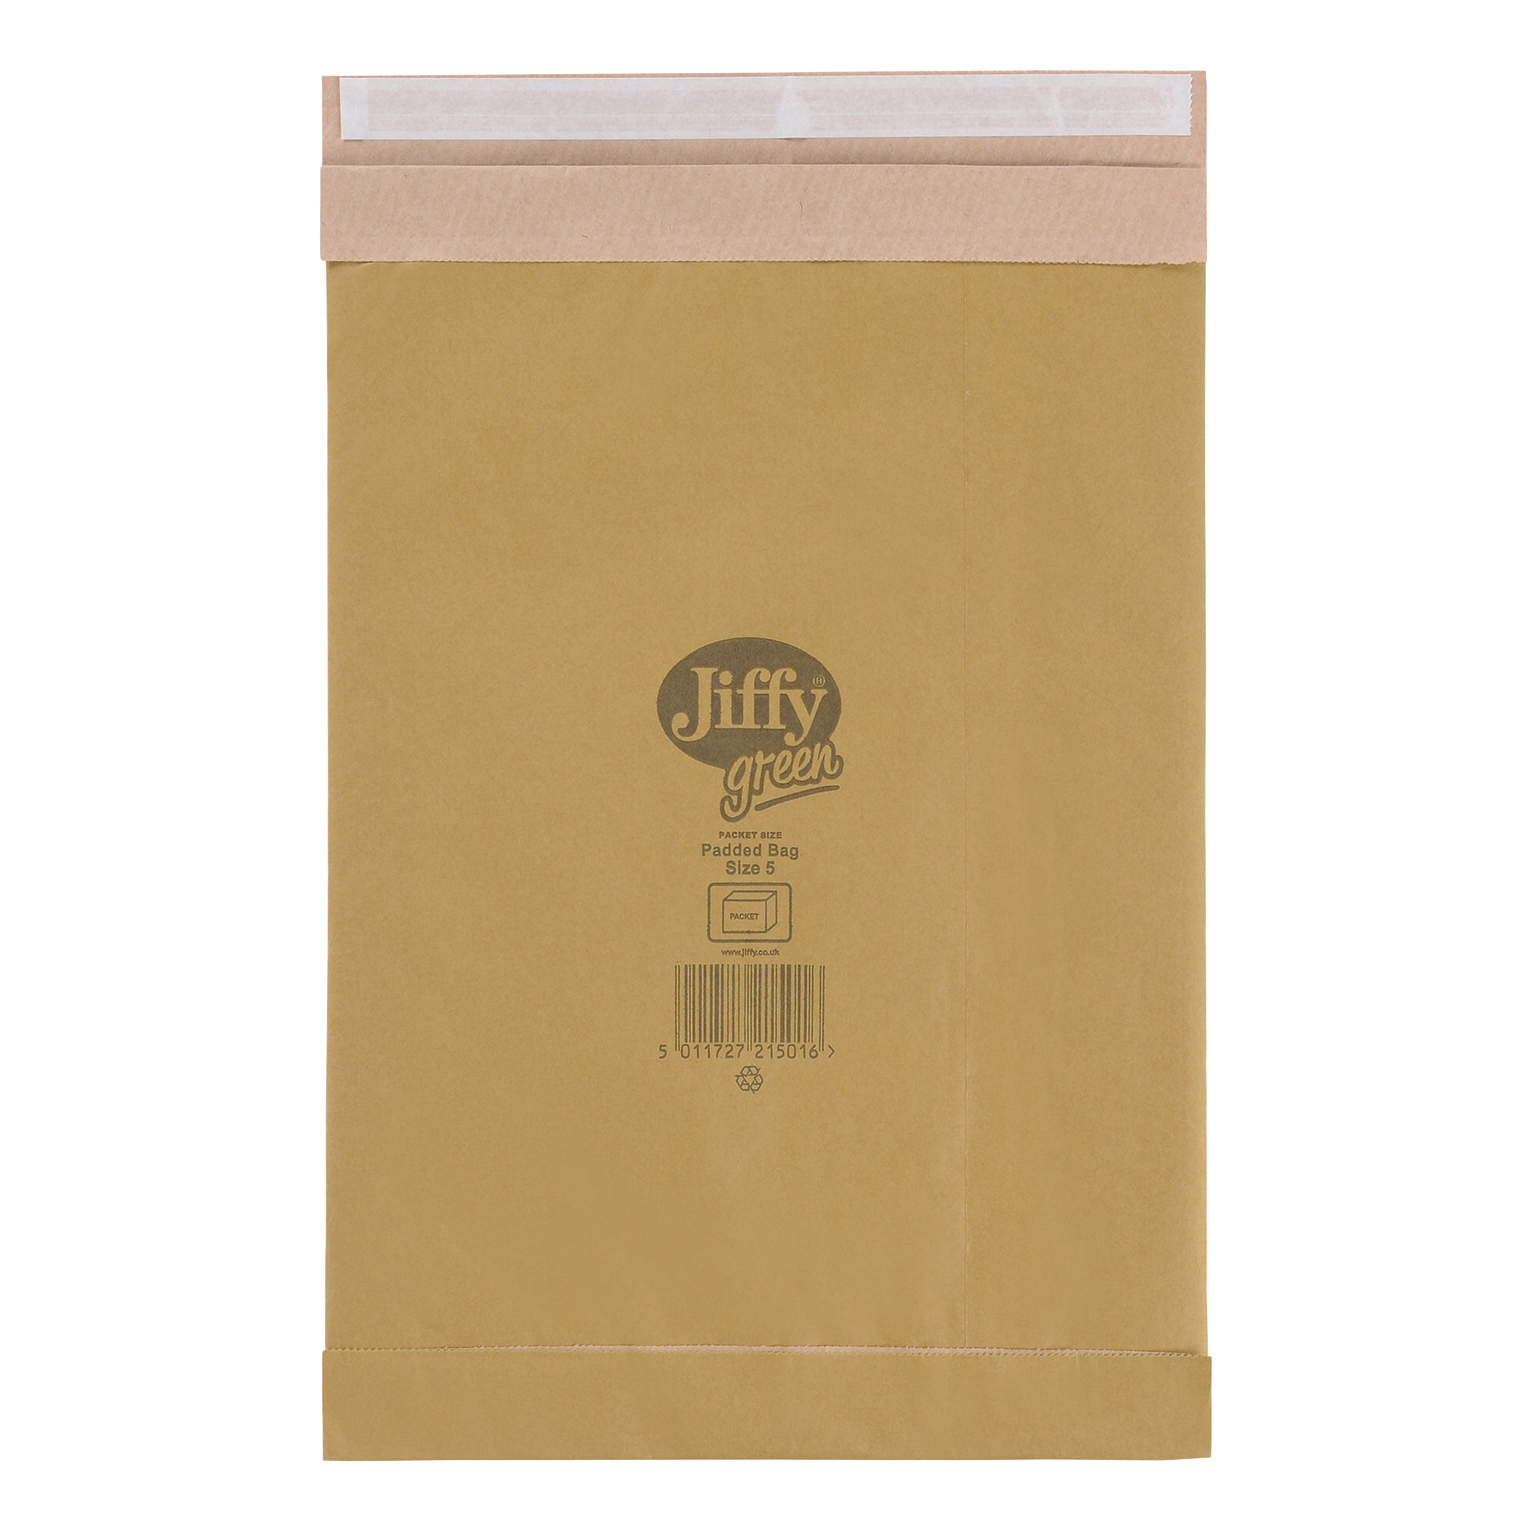 Jiffy Padded Bag Envelopes Mini Pack Size 5 Bubble-lined 245x381mm Brown Ref JPB-MP-5-10 Pack 10